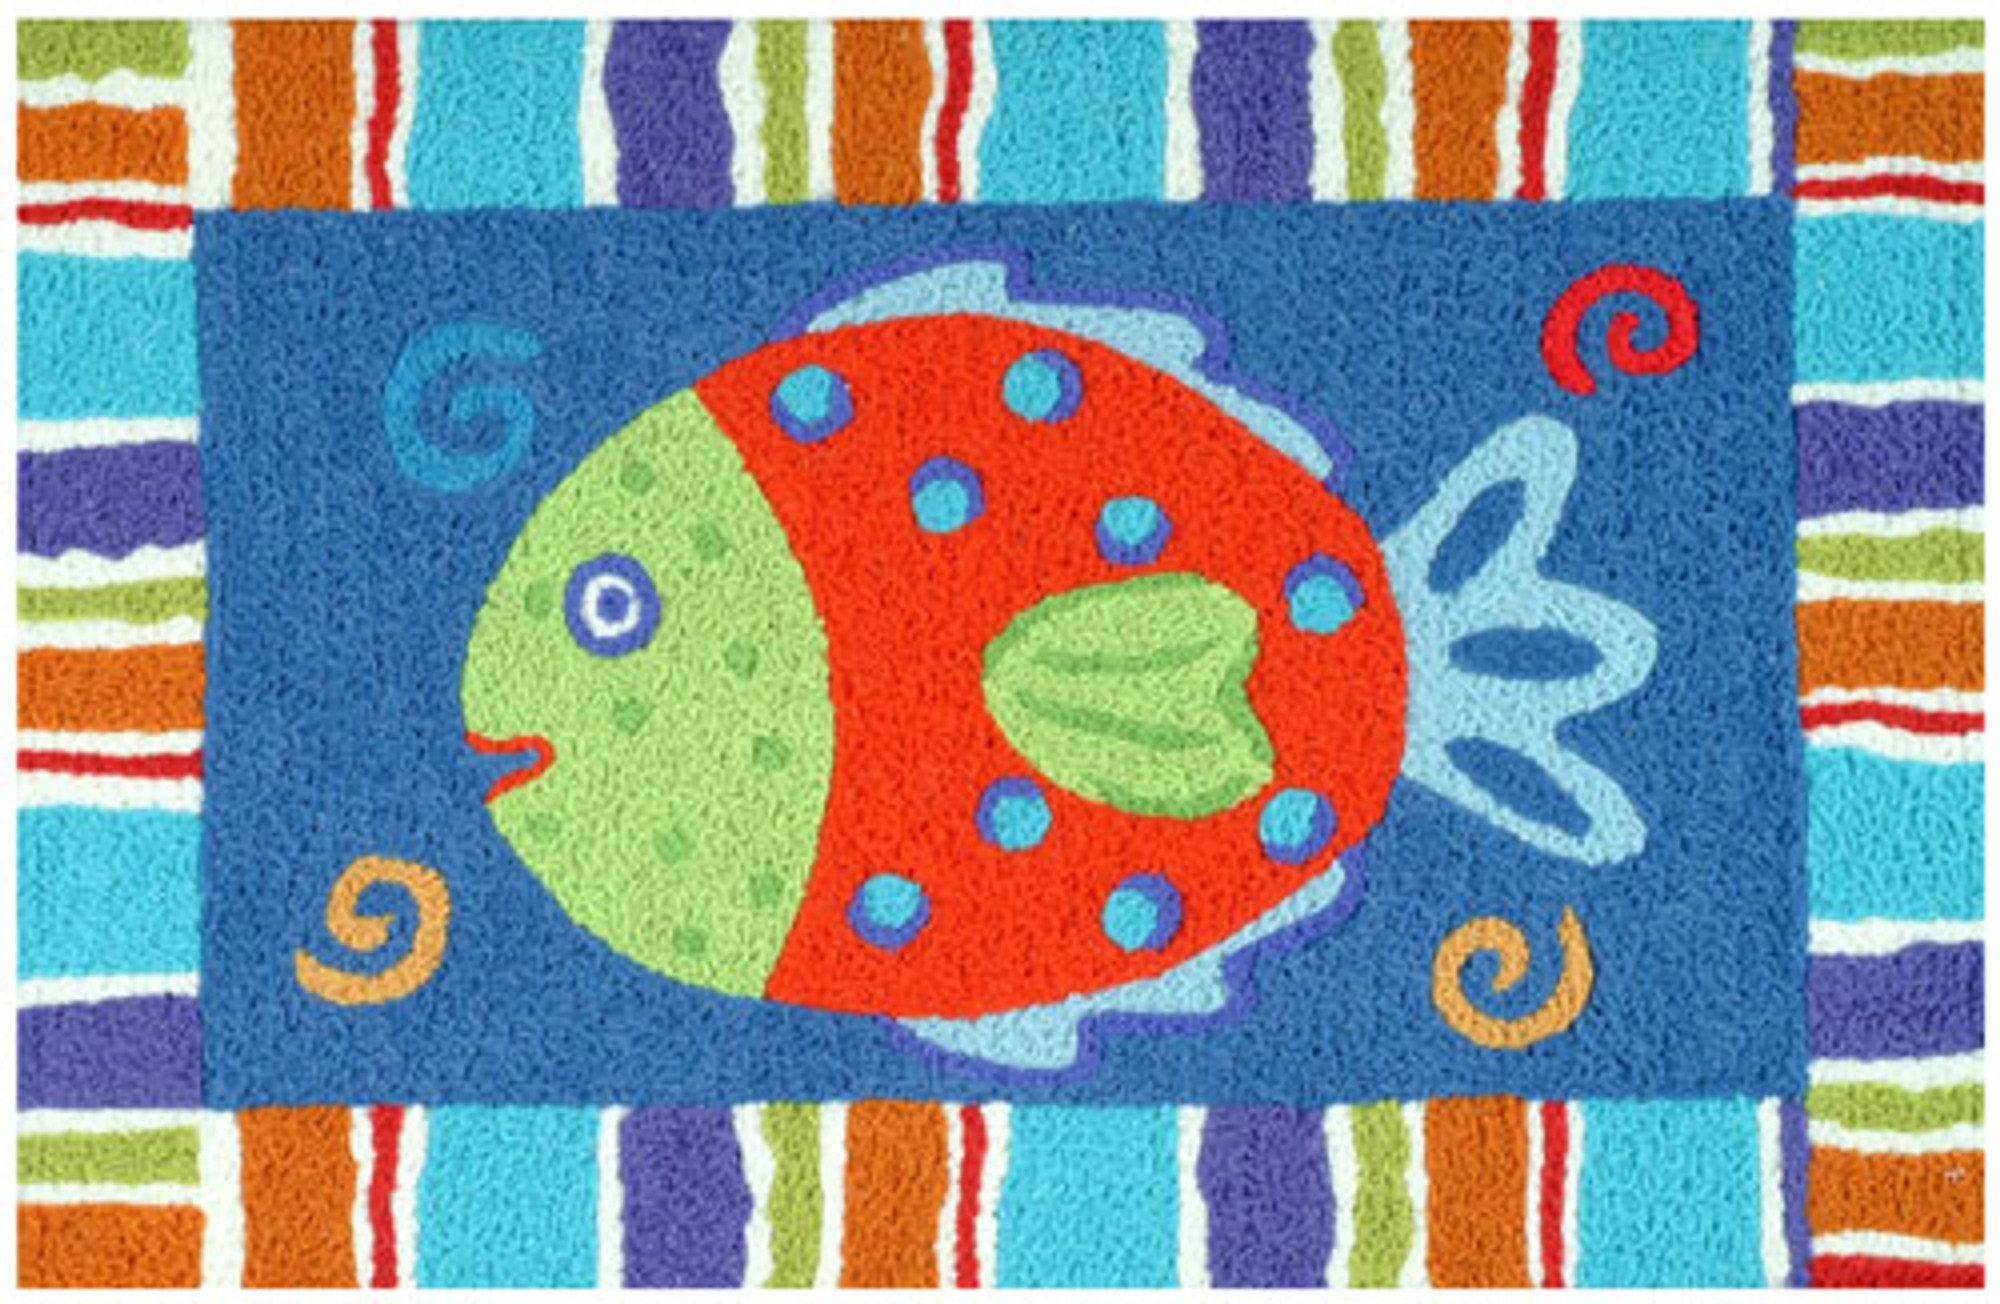 A colorful, machine washable Jellybean® rug featuring a smiling fish!